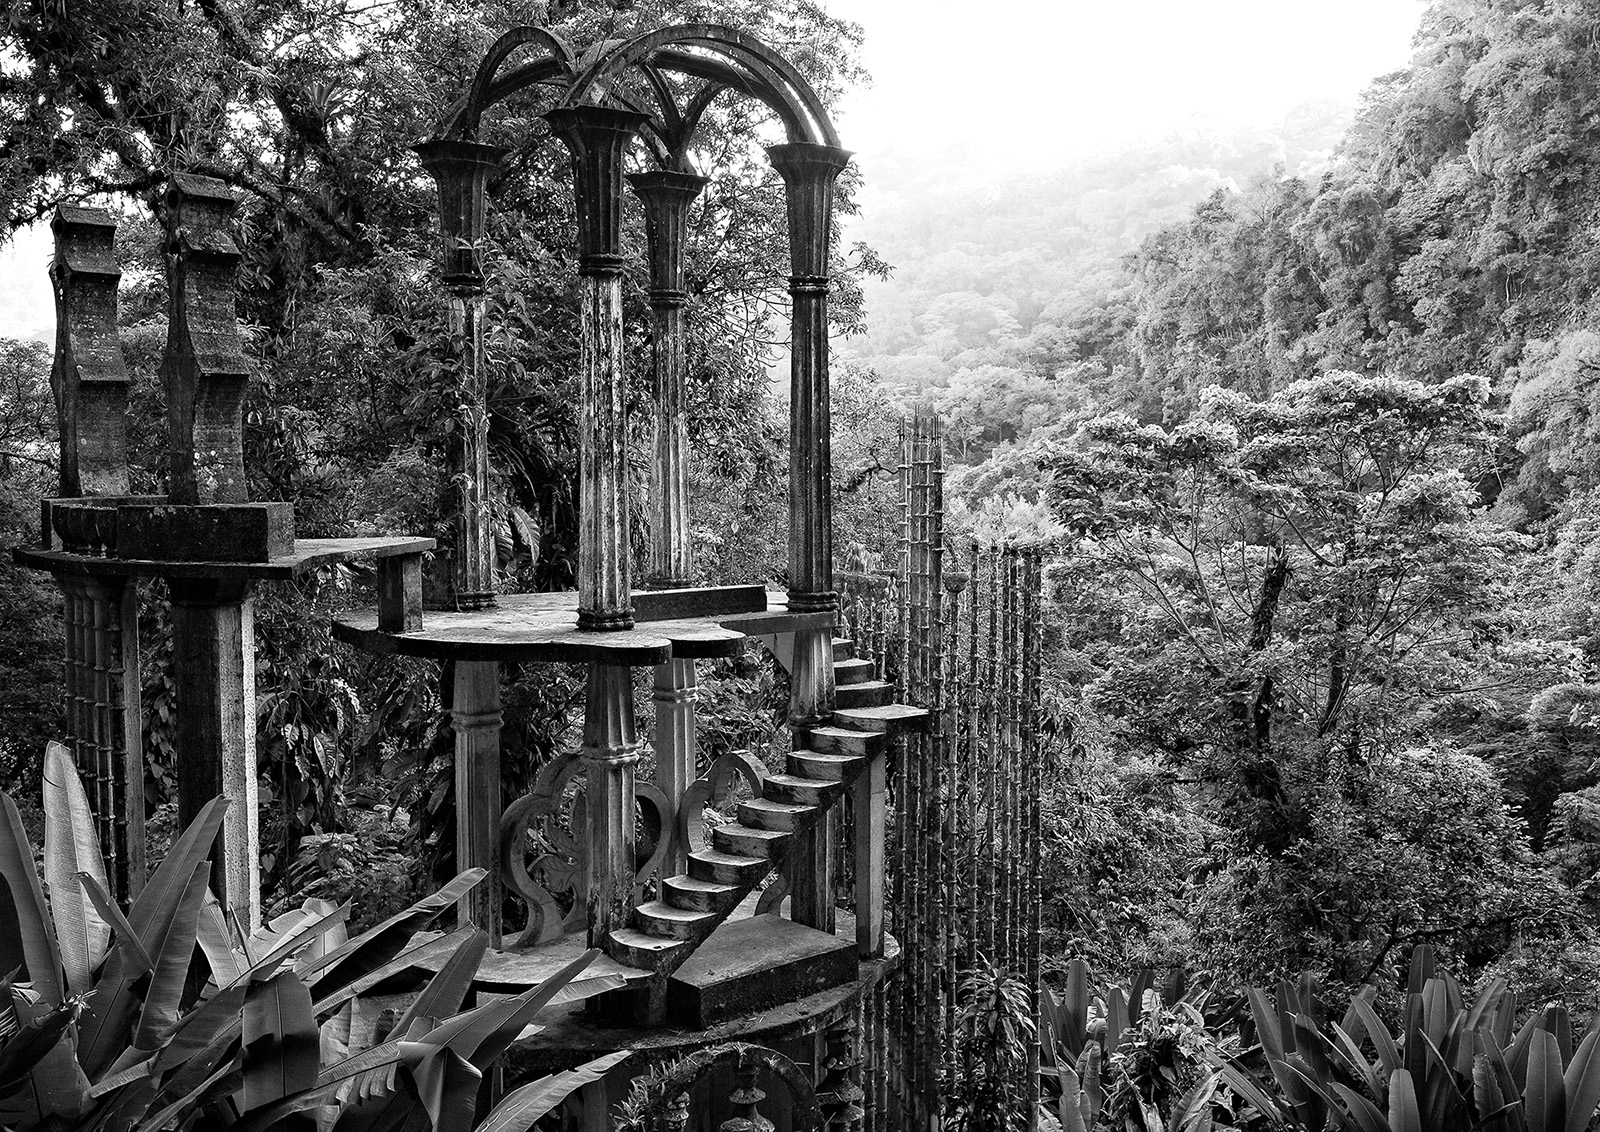 Las Pozas, the Surrealist sculpture garden of Edward James